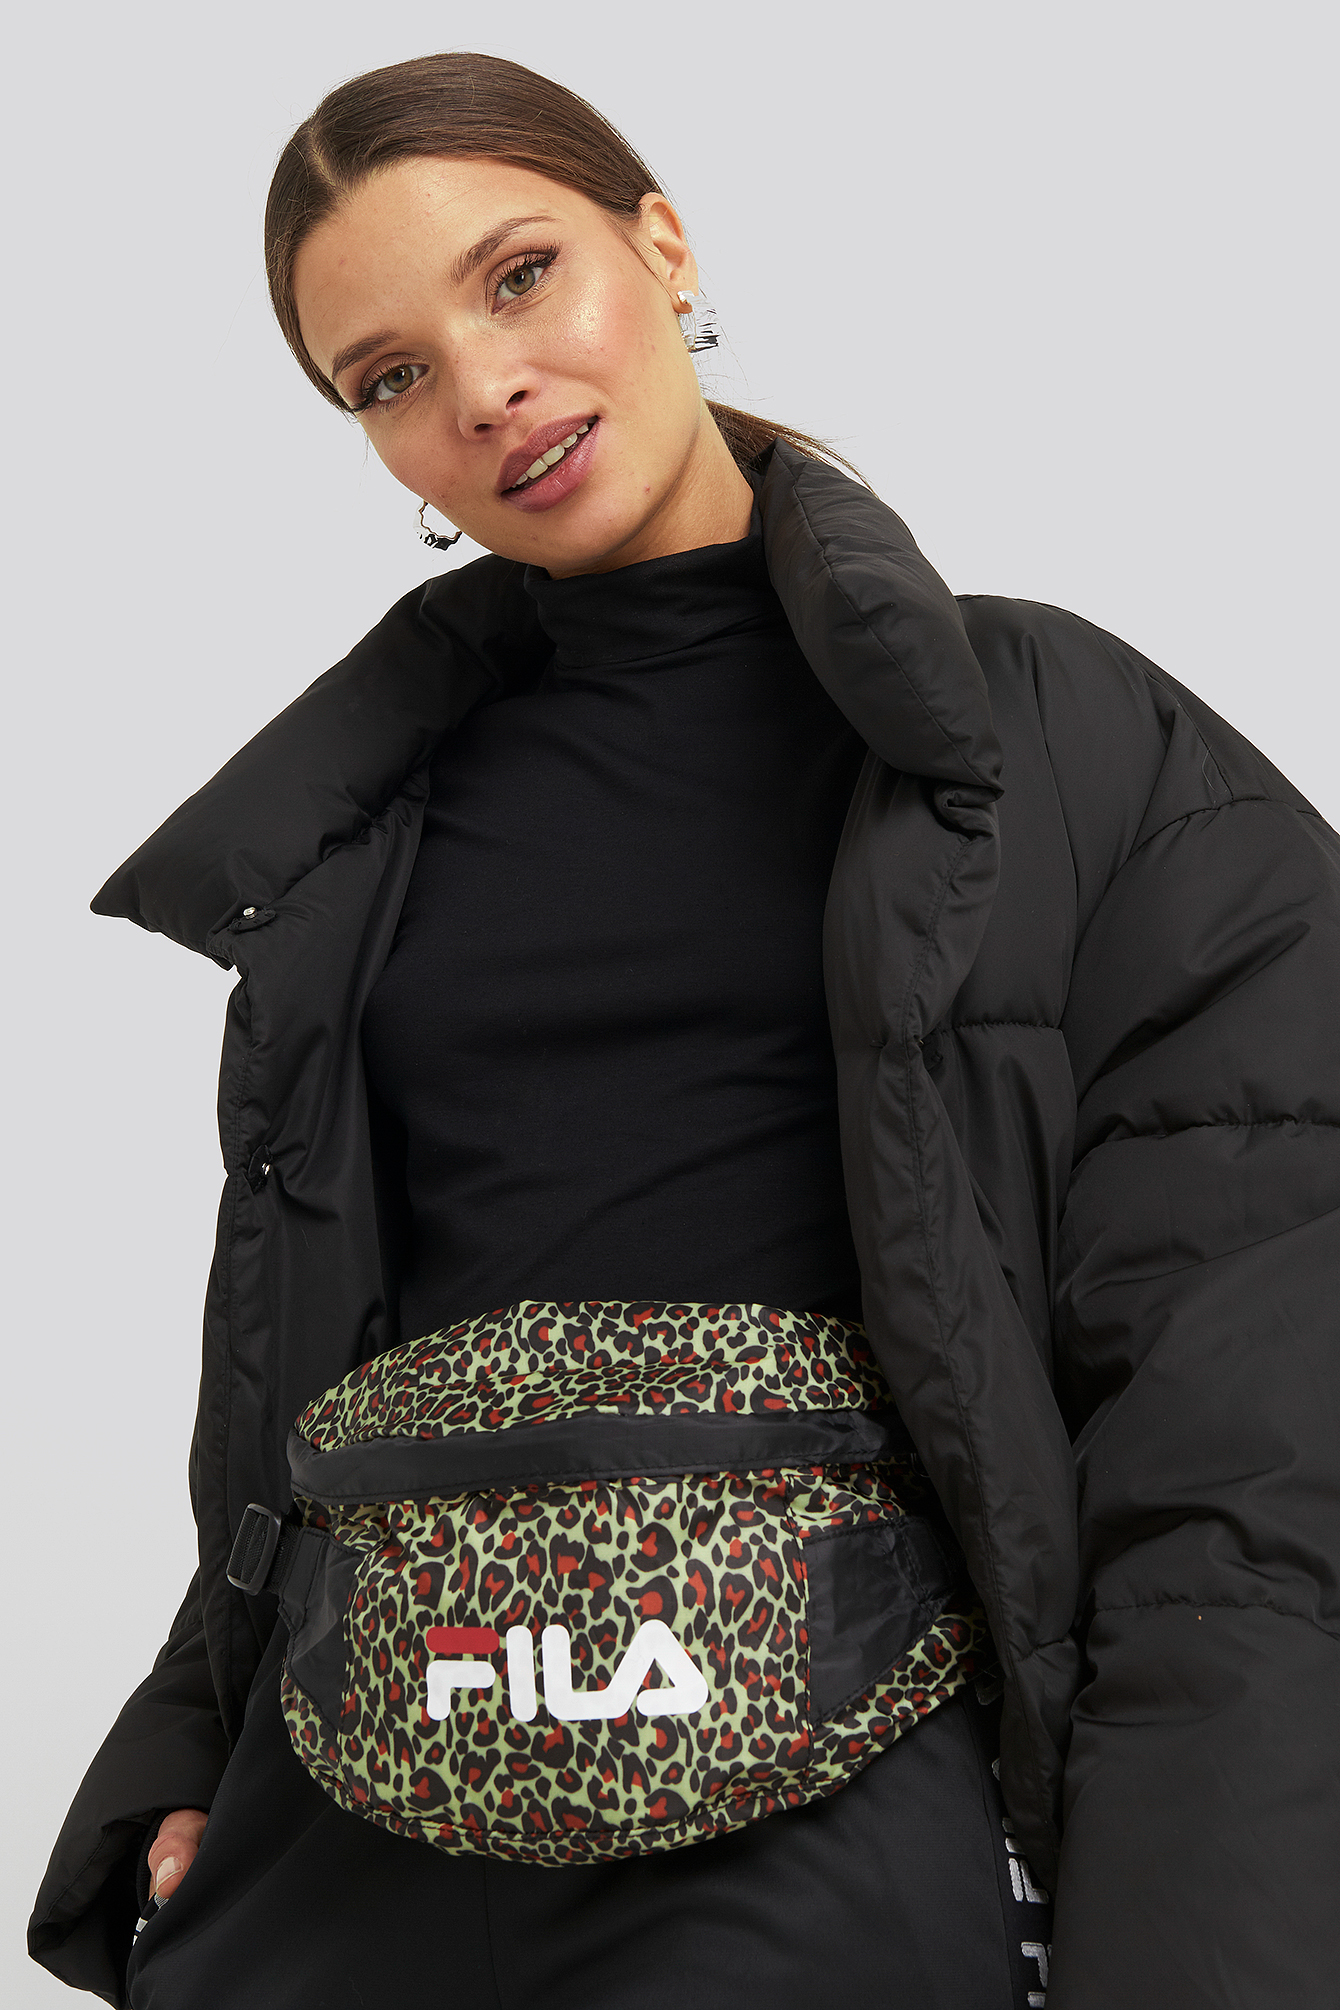 Black Leopard Print Light Weight Waist Bag Göteborg